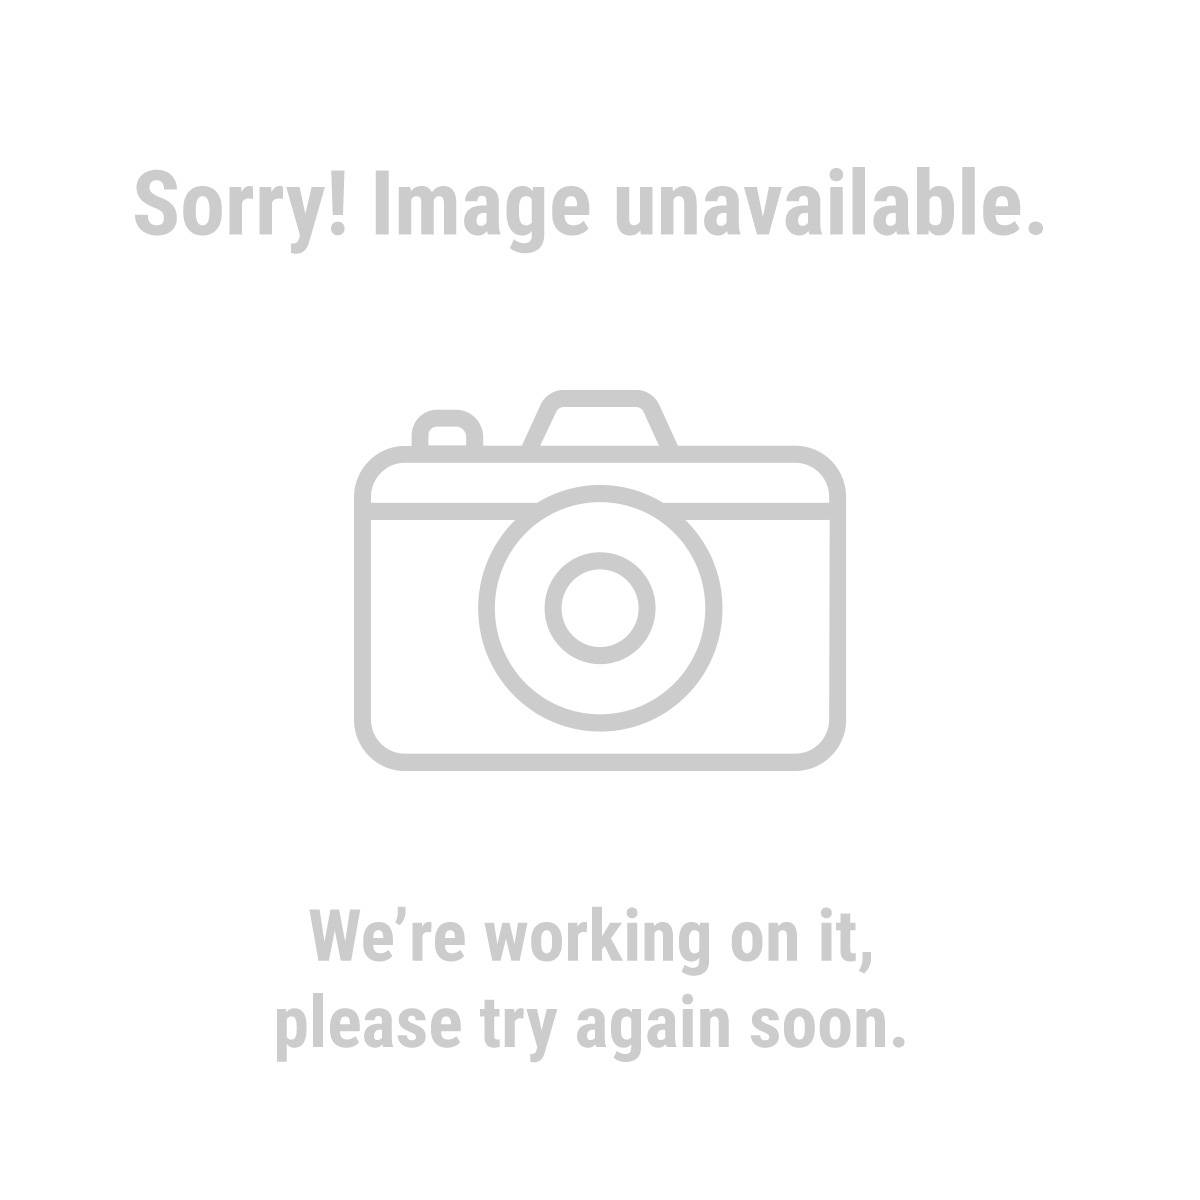 Central Hydraulics® 91020 1200 Lb. Low-Profile Transmission Jack